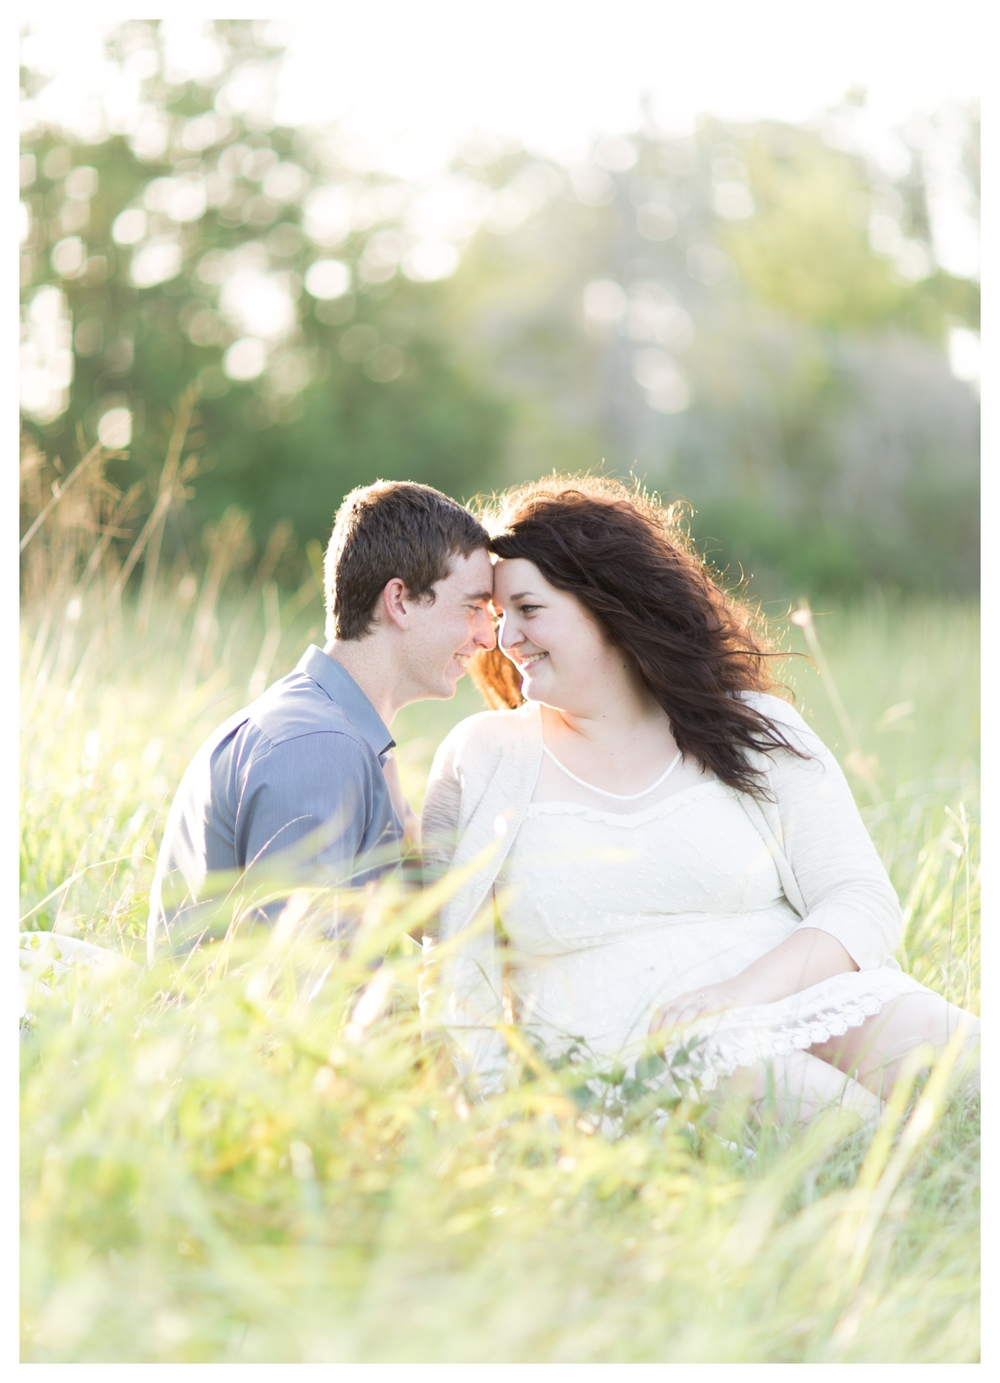 Joe+Elizabeth Tx Engagements-69.jpg